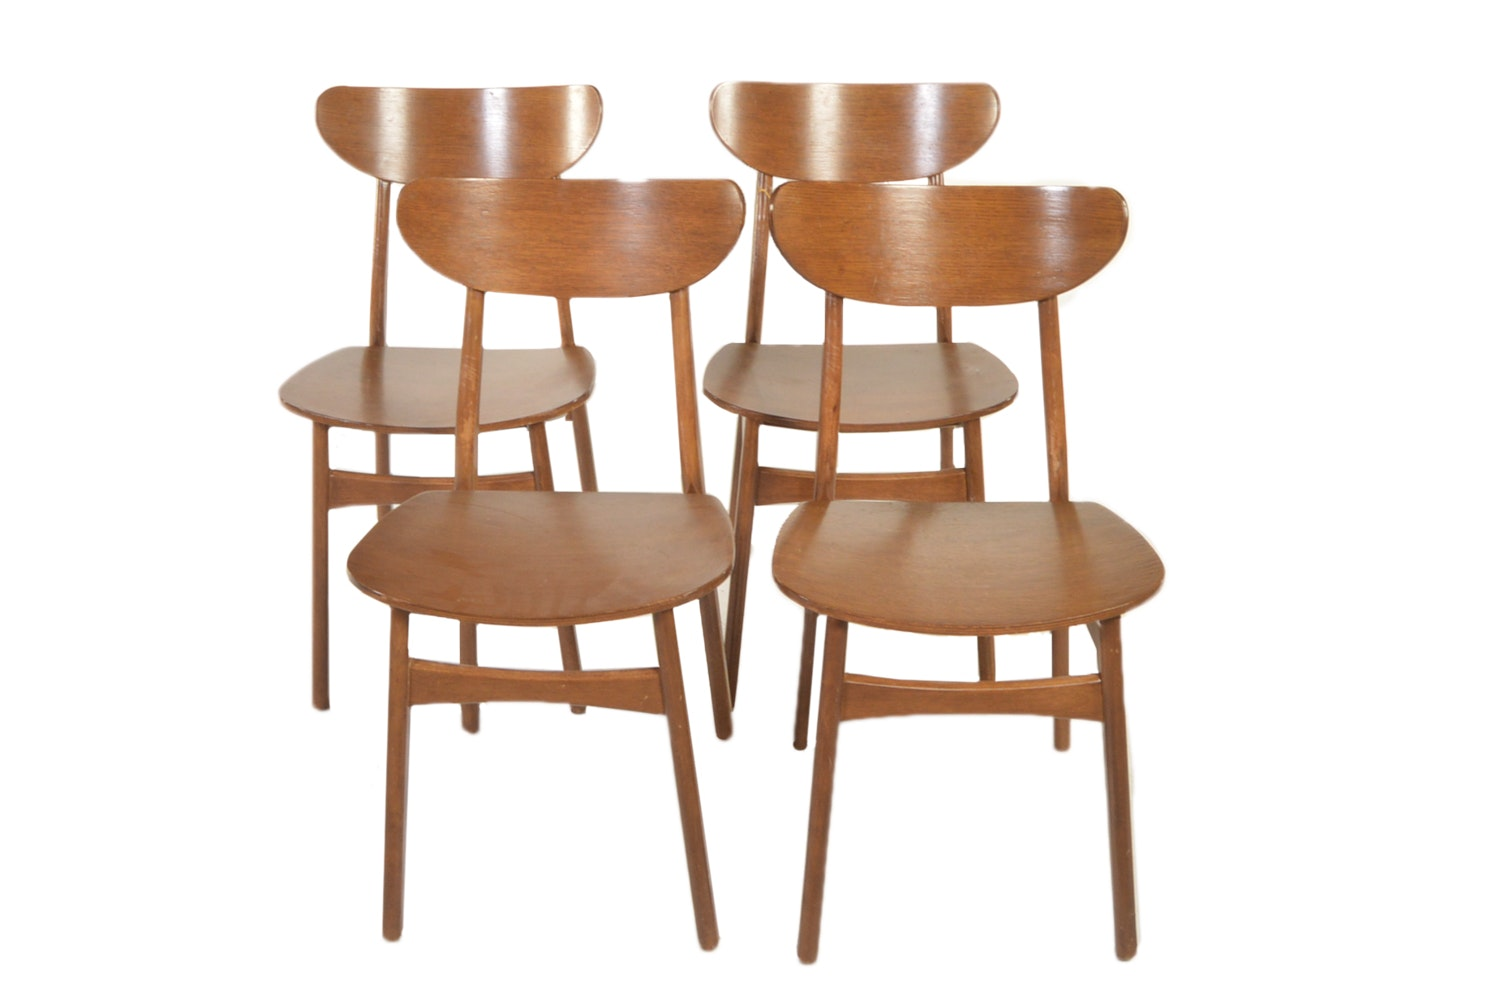 Mid Century Modern Style Side Chairs by West Elm